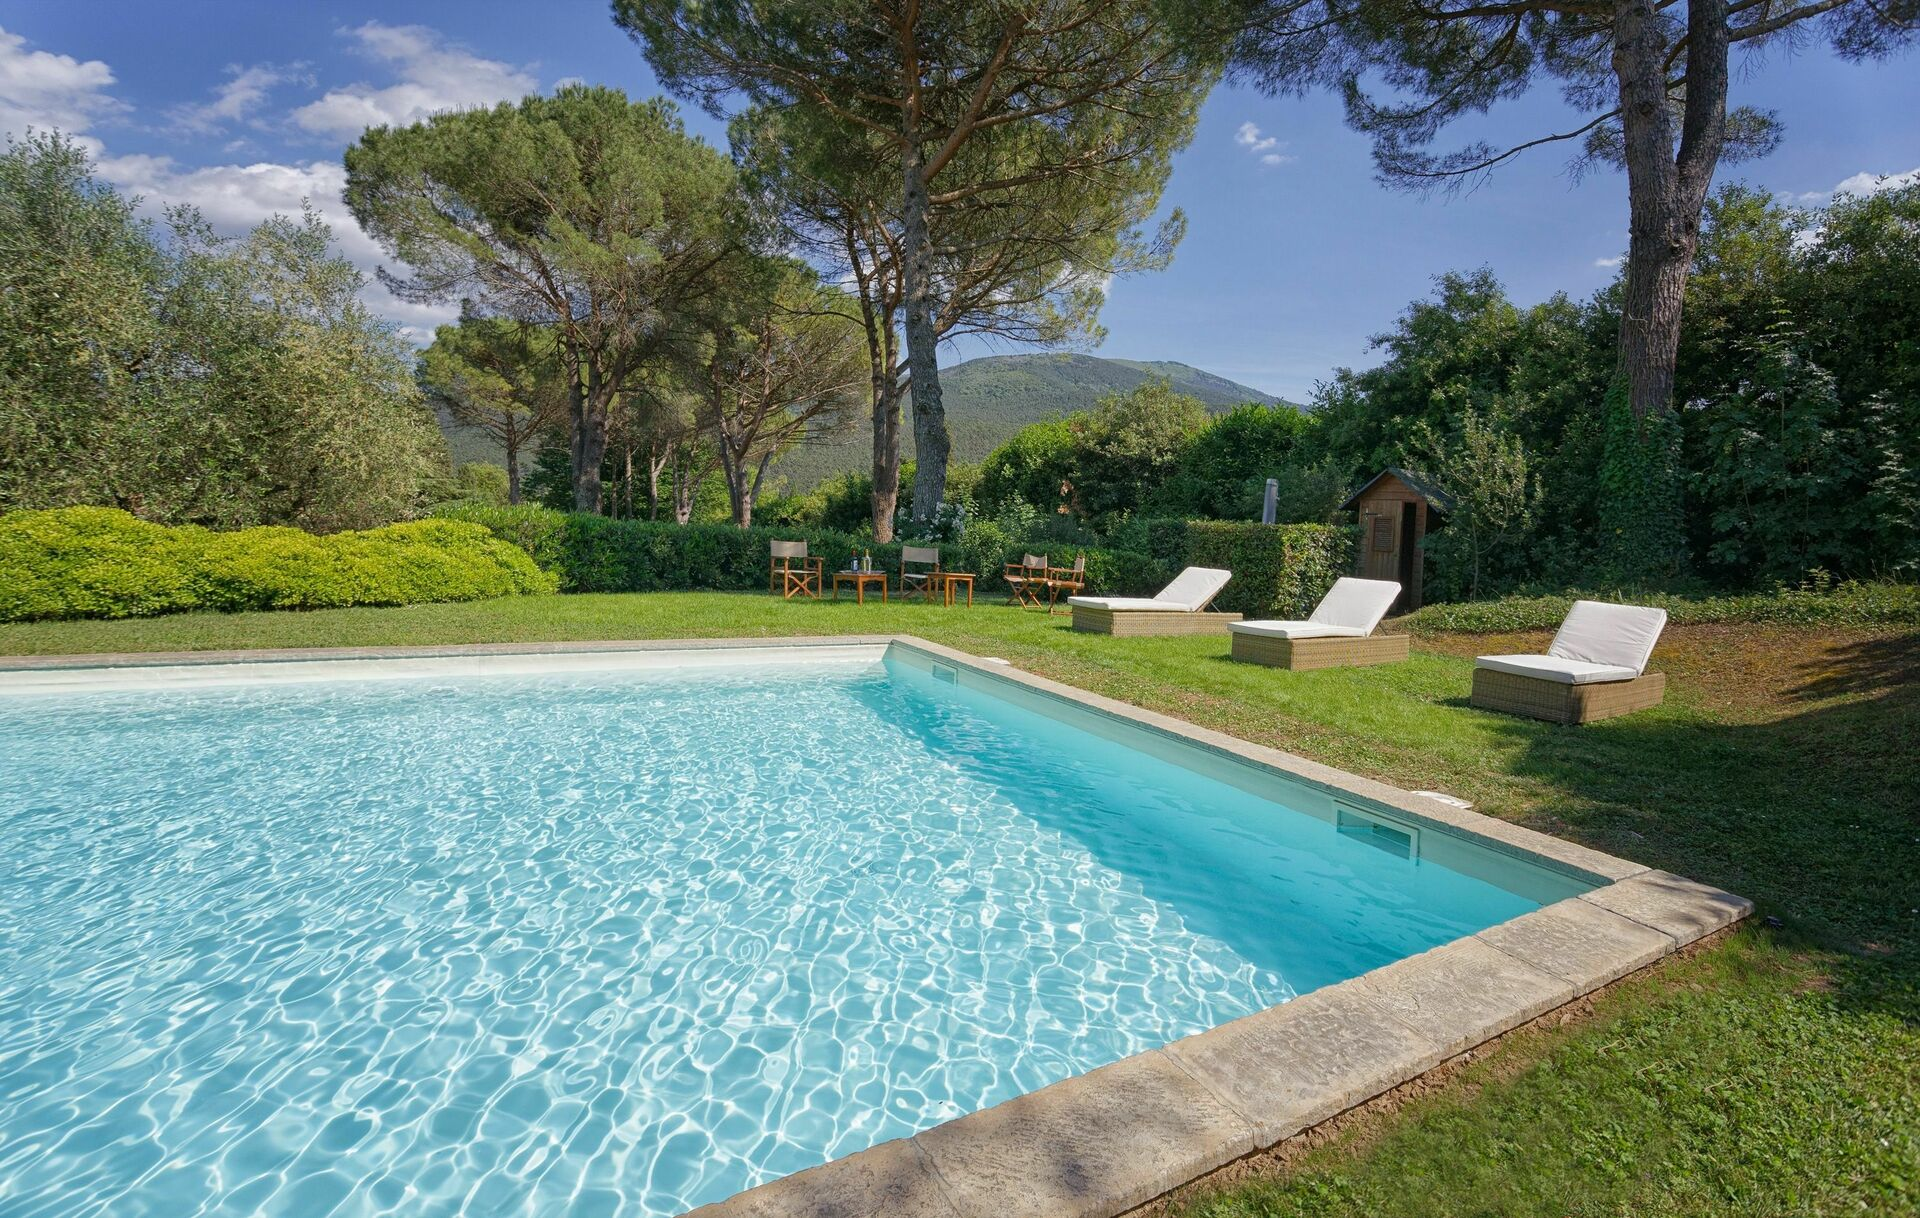 Pool Garten Lustig Holiday Villa With Pool In Tuscany Villa De Ranieri